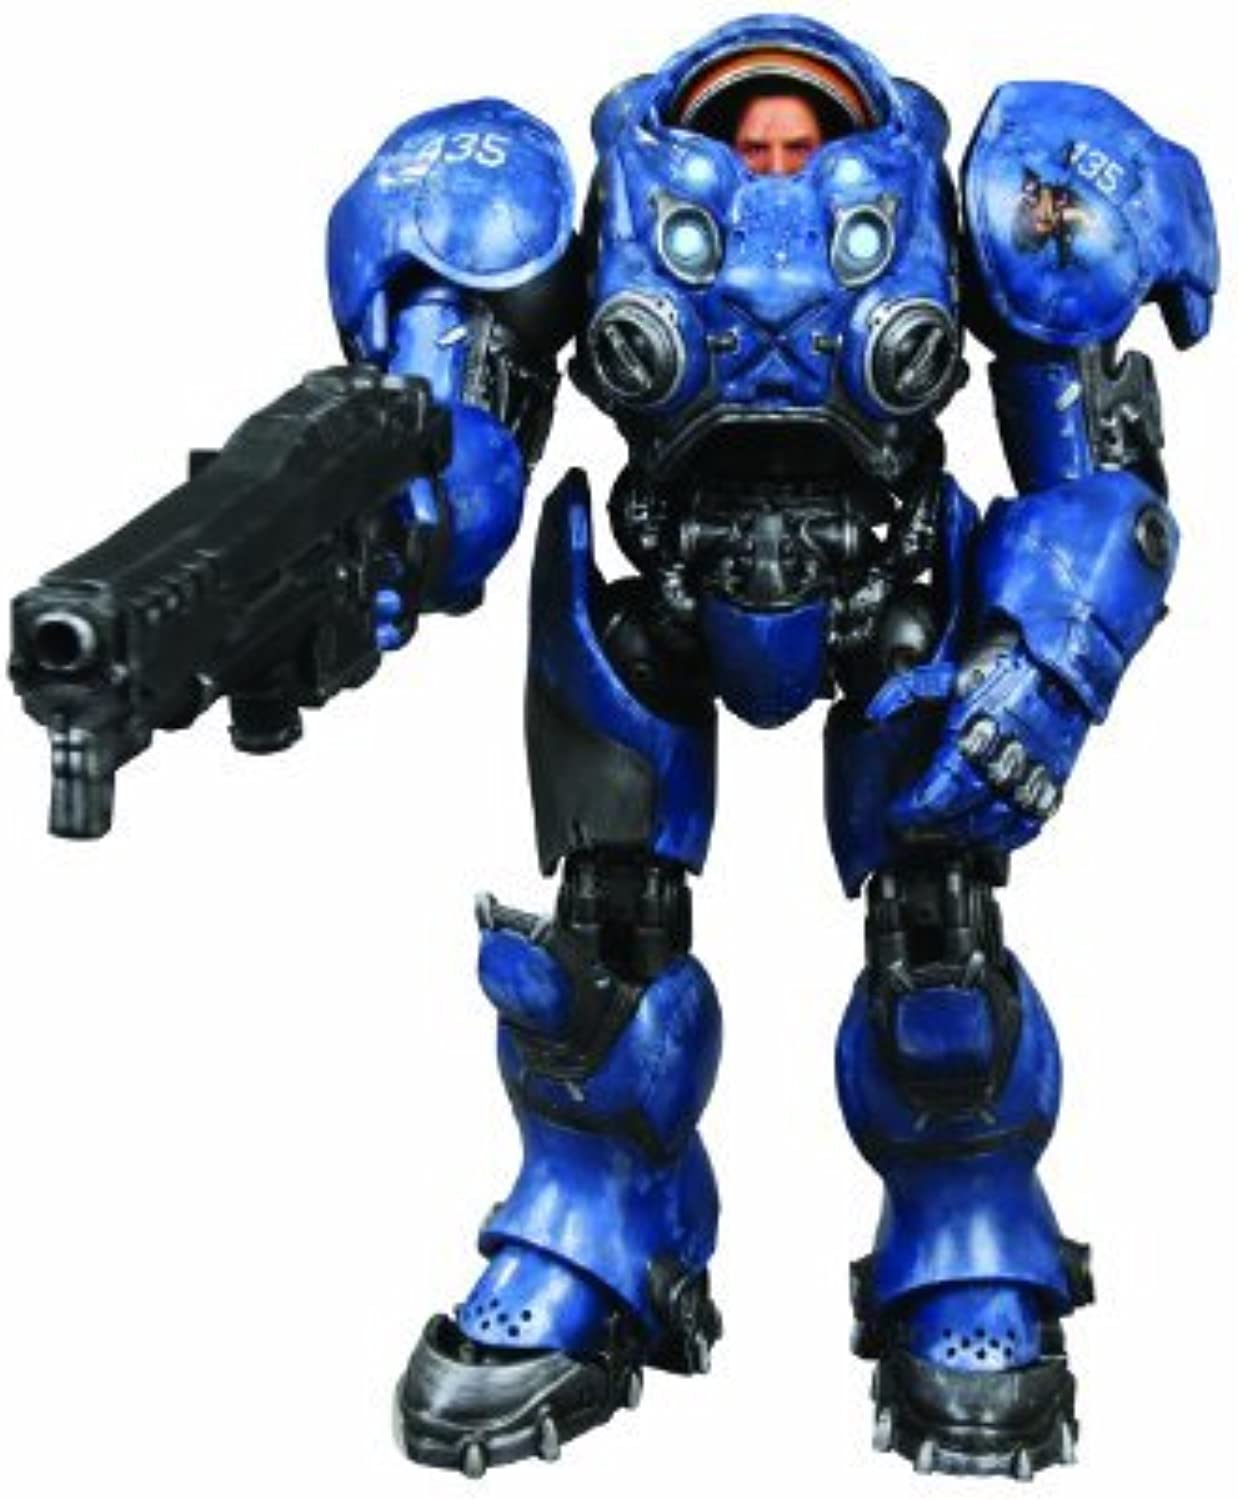 DC Unlimited Starcraft Premium Series 2  Tychus Findlay Action Figure by DC Comics